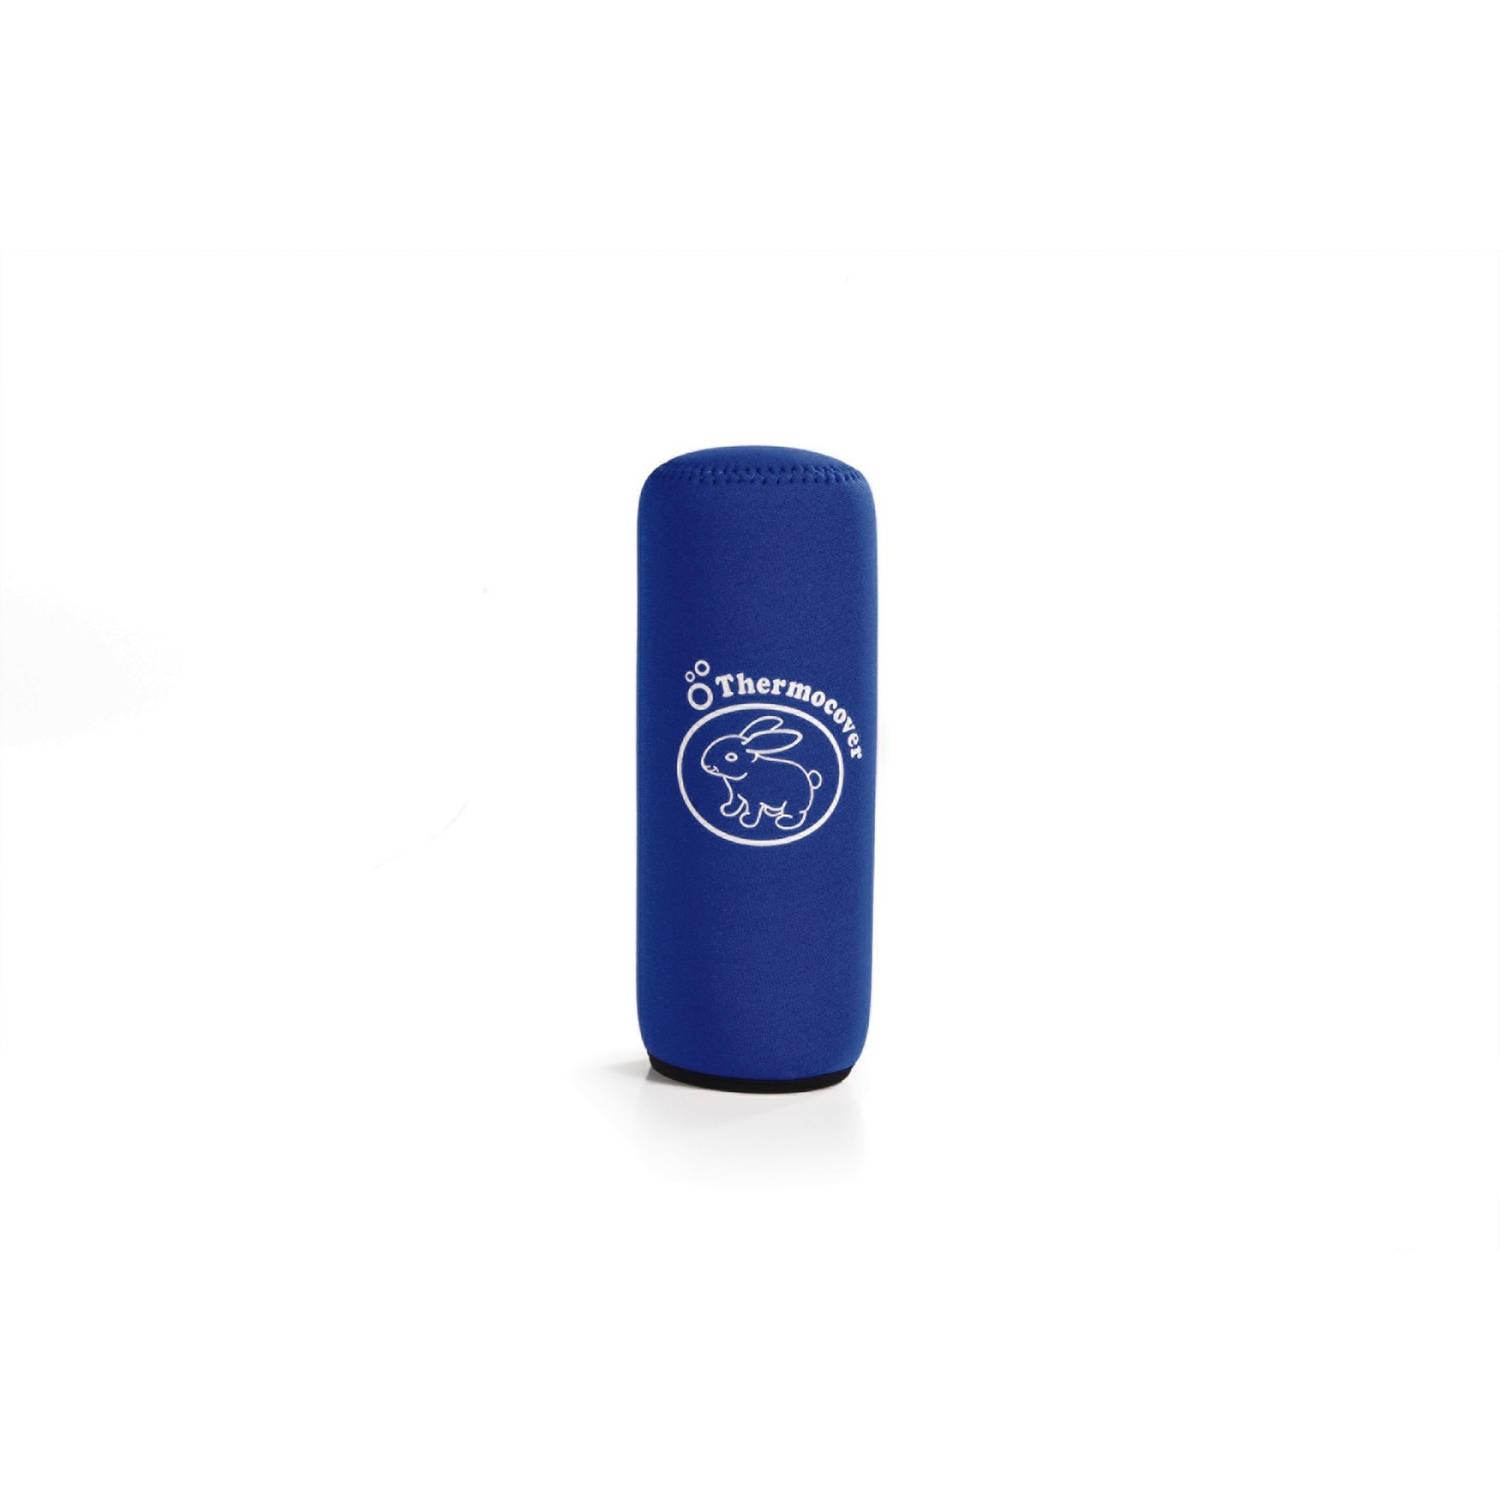 Thermocover v drinkfl blauw 320ml 17,5